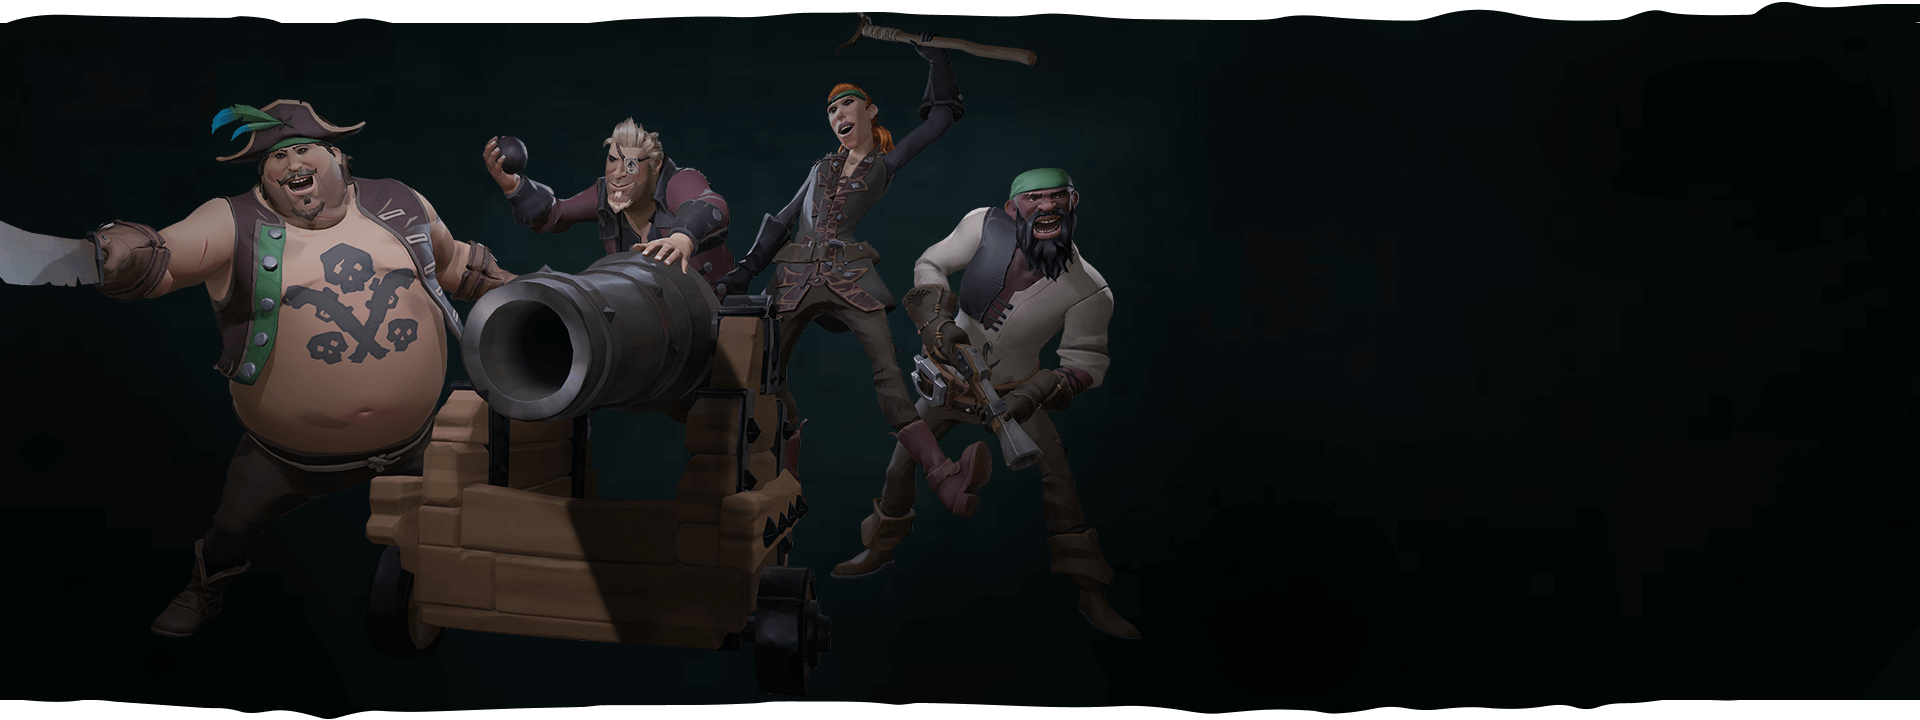 Four crew heroes wielding weapons posing around a cannon